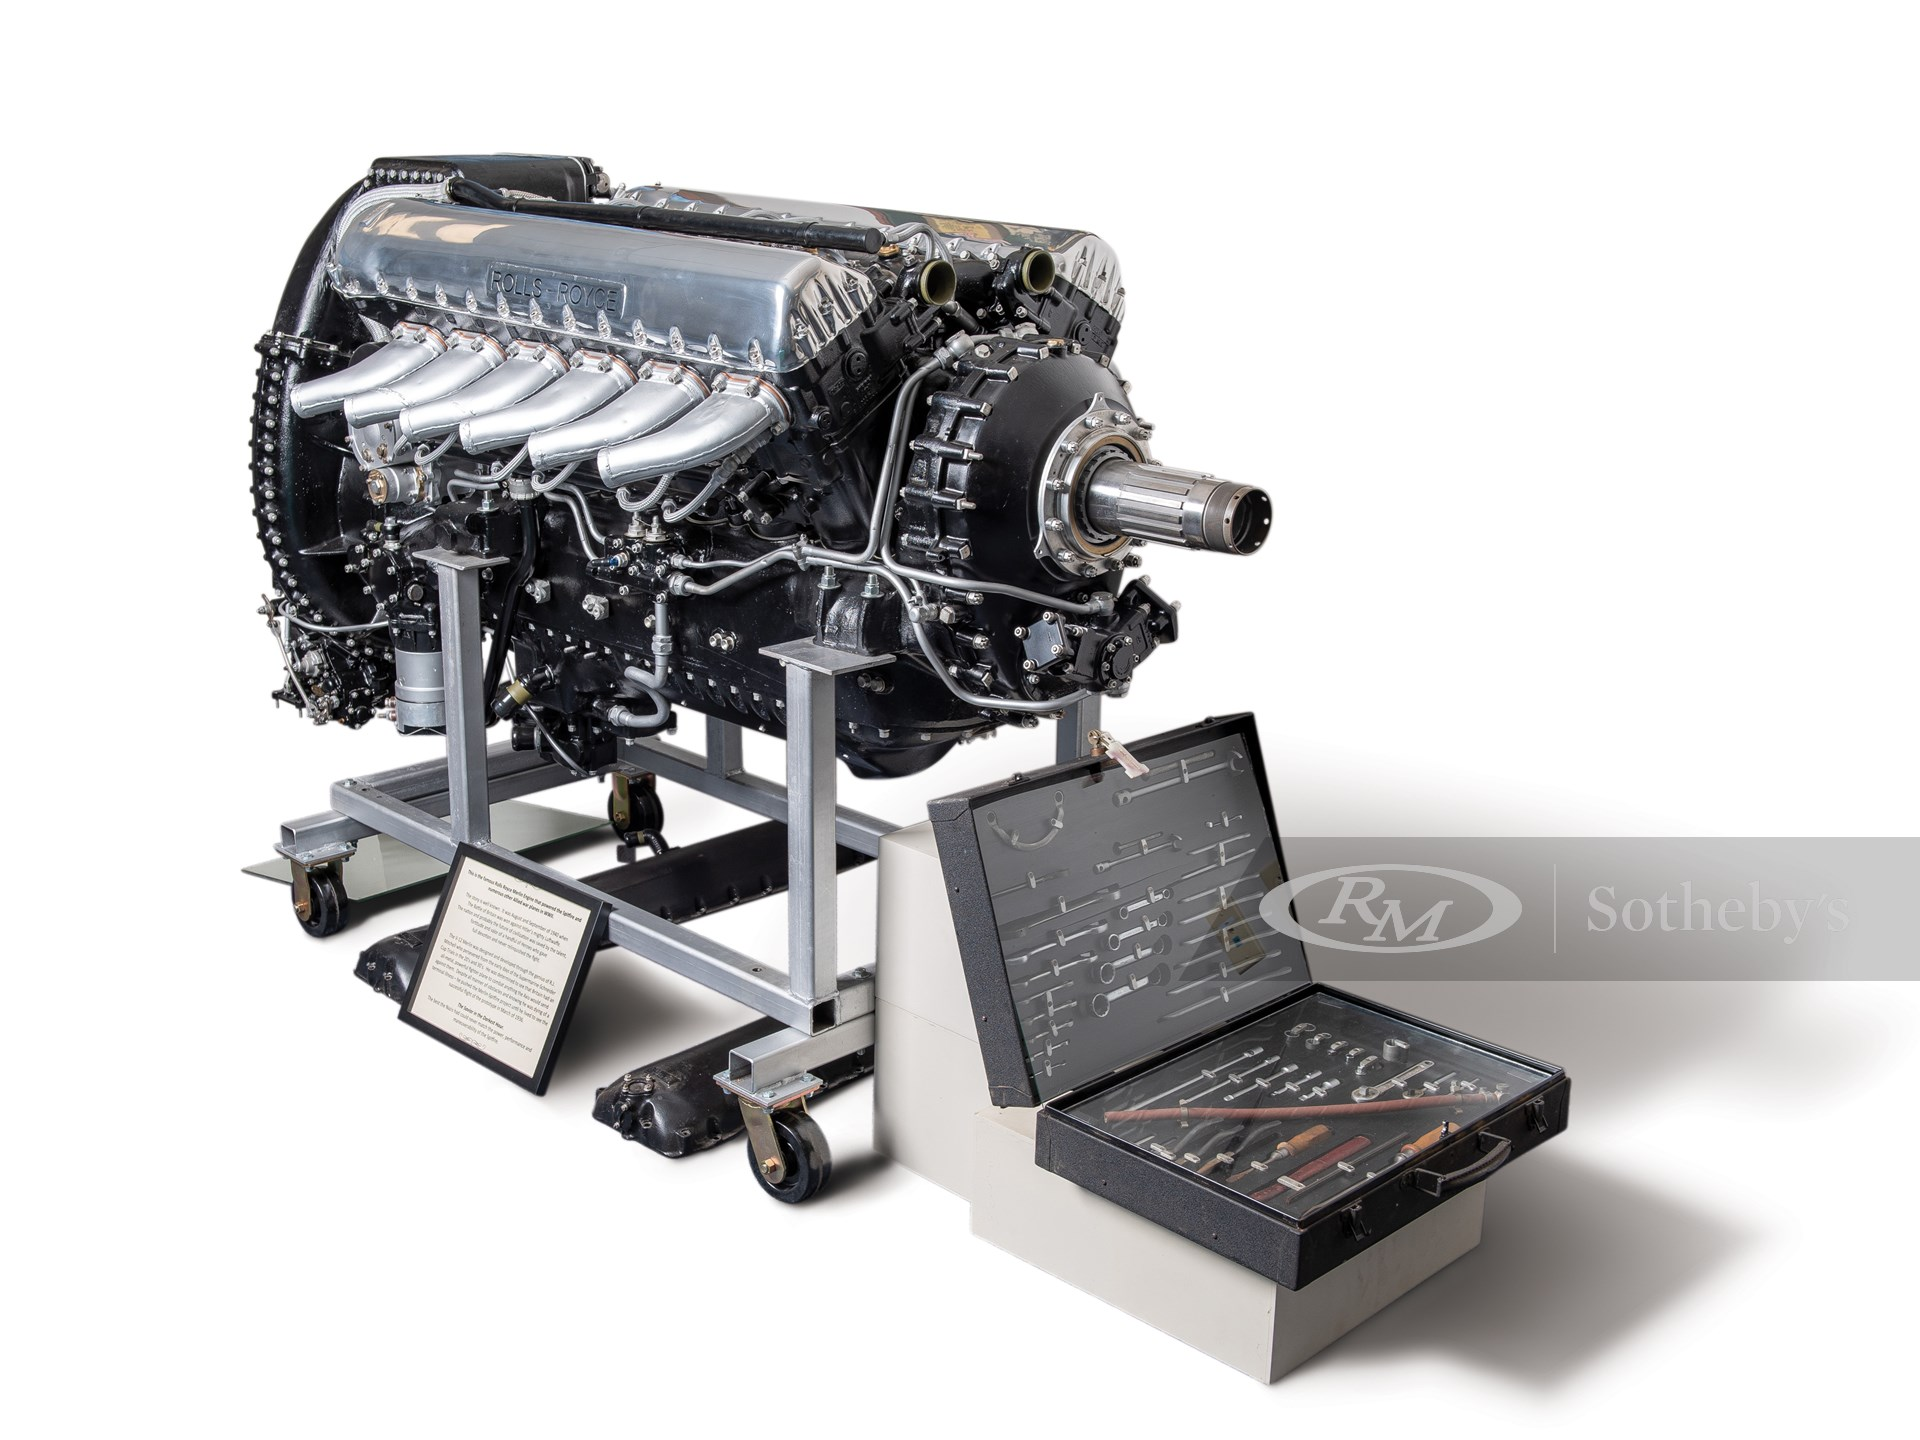 Rolls-Royce V-12 Merlin Display Engine and Service Tool Kit -